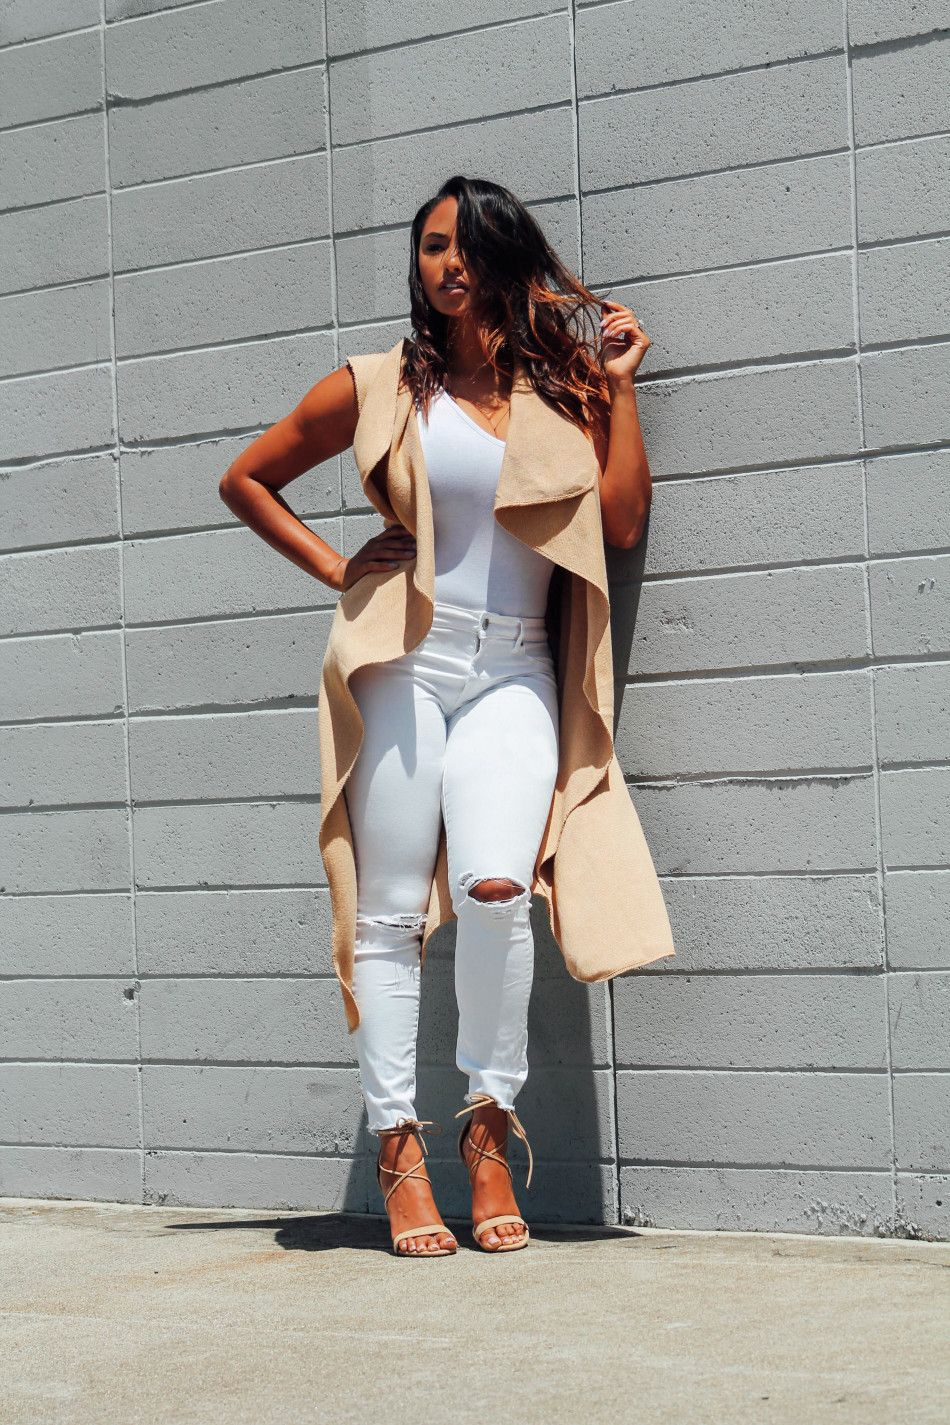 707f2e8b5b77f Boohoo camel duster waistcoat and bodysuit | J Brand jeans (old) | Steve  Madden sandals Added a new layer to the bodysuit and jean combo that I've  been ...